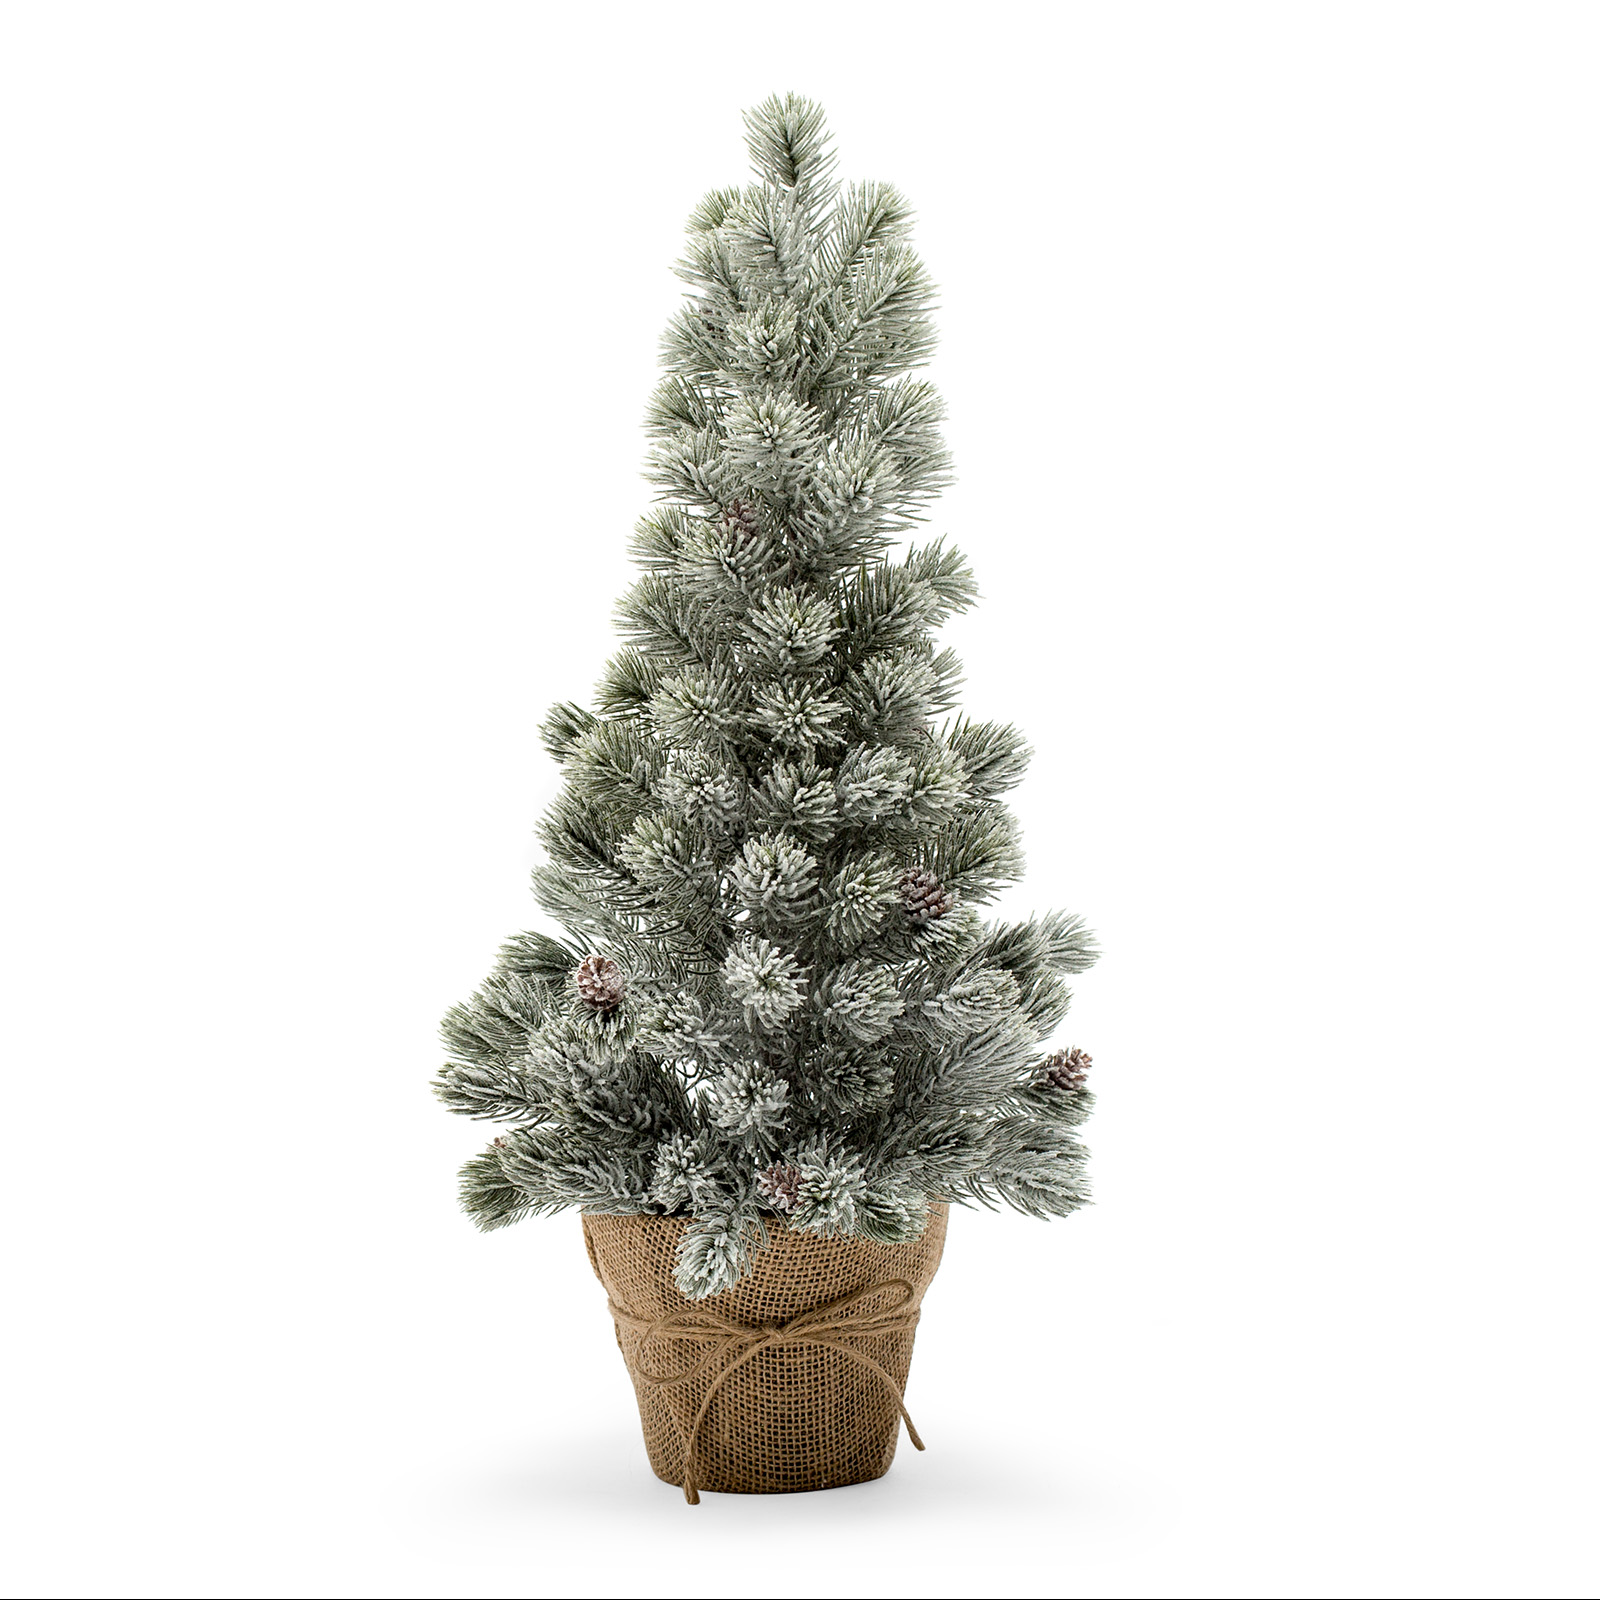 Belham Living 2ft Flocked Christmas Tree with Pine Cones and Burlap Base